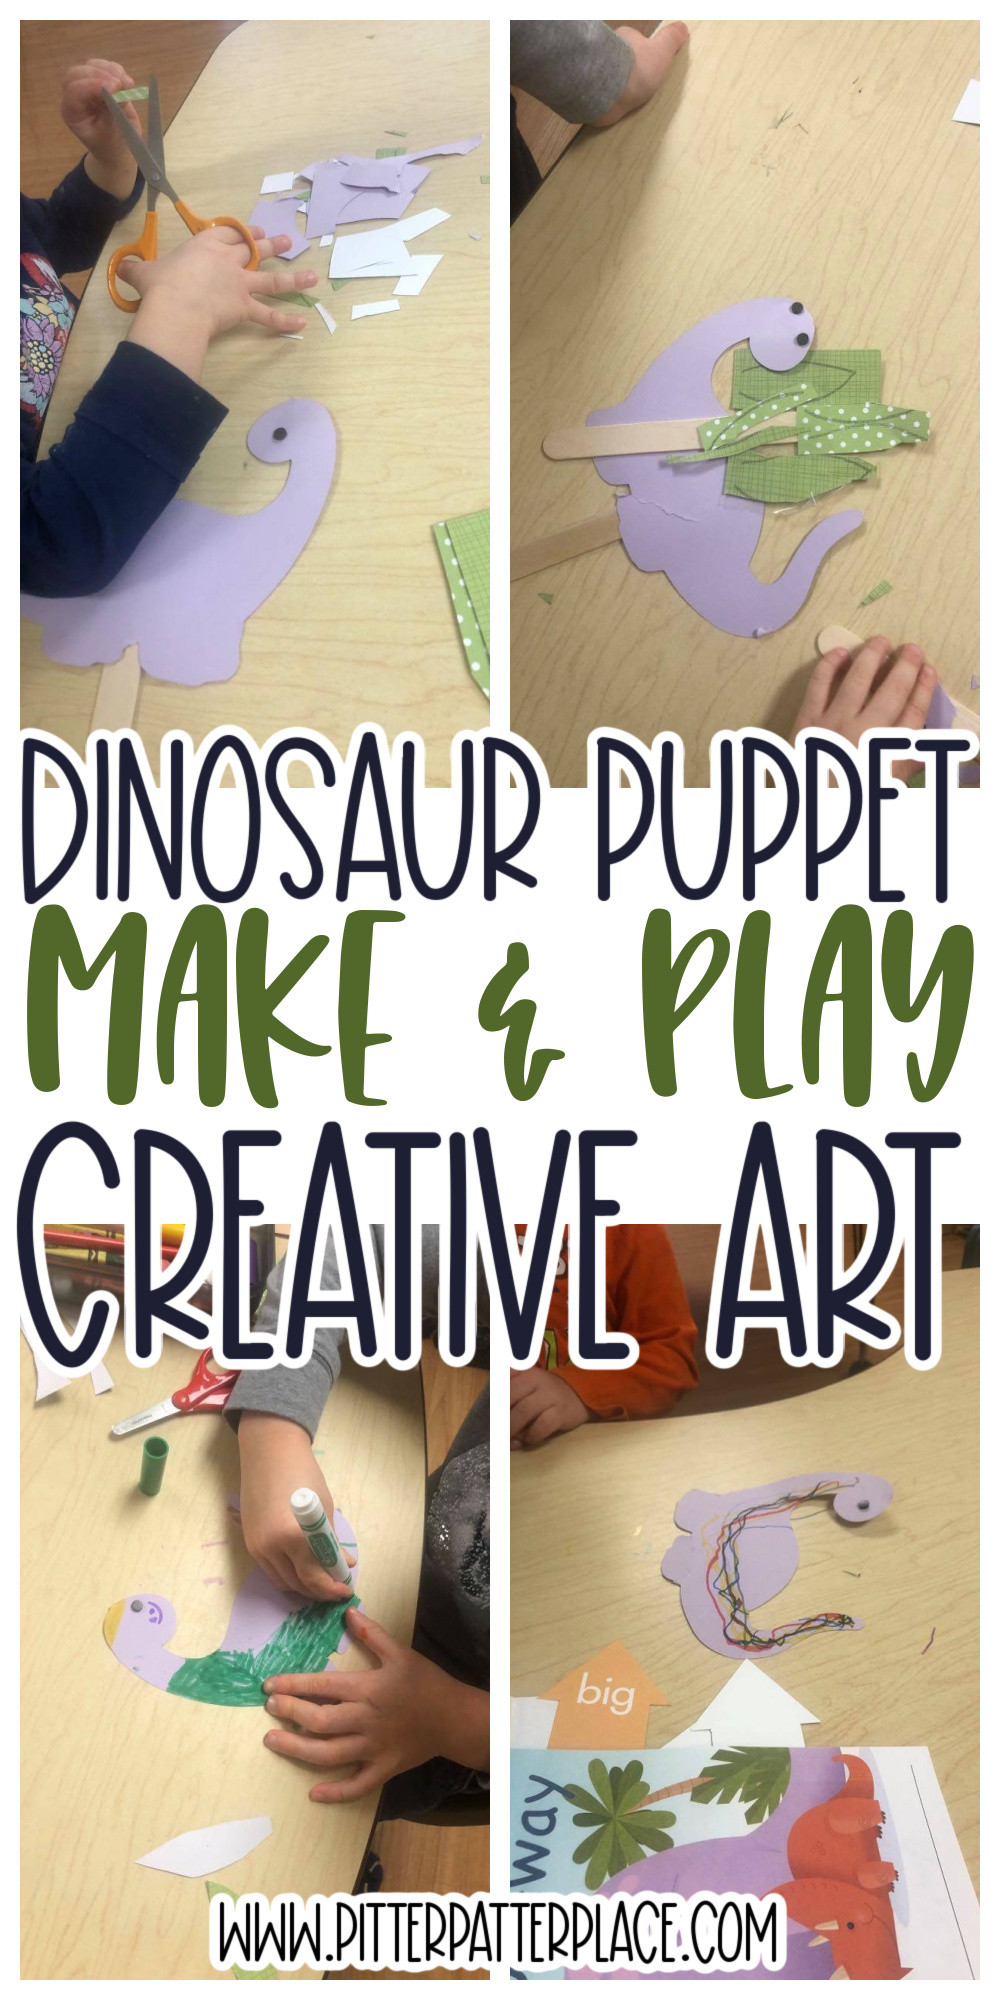 collage of dinosaur puppet images with text: Dinosaur Puppet Make & Play Creative Art